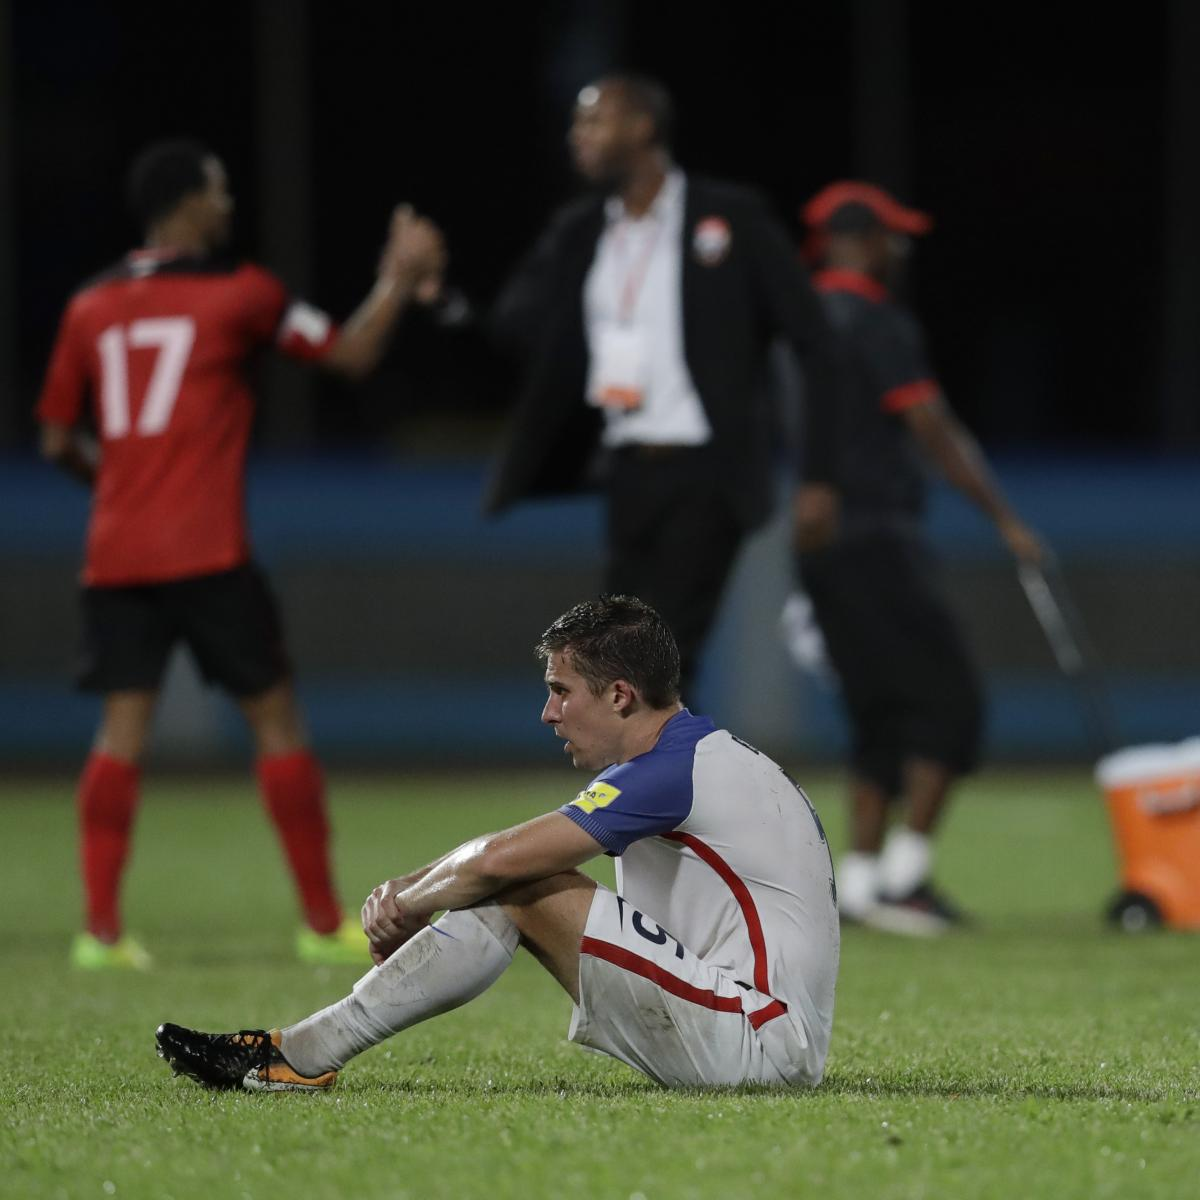 USA Fails to Qualify for 2018 World Cup: Twitter Reacts to Stunning Upset